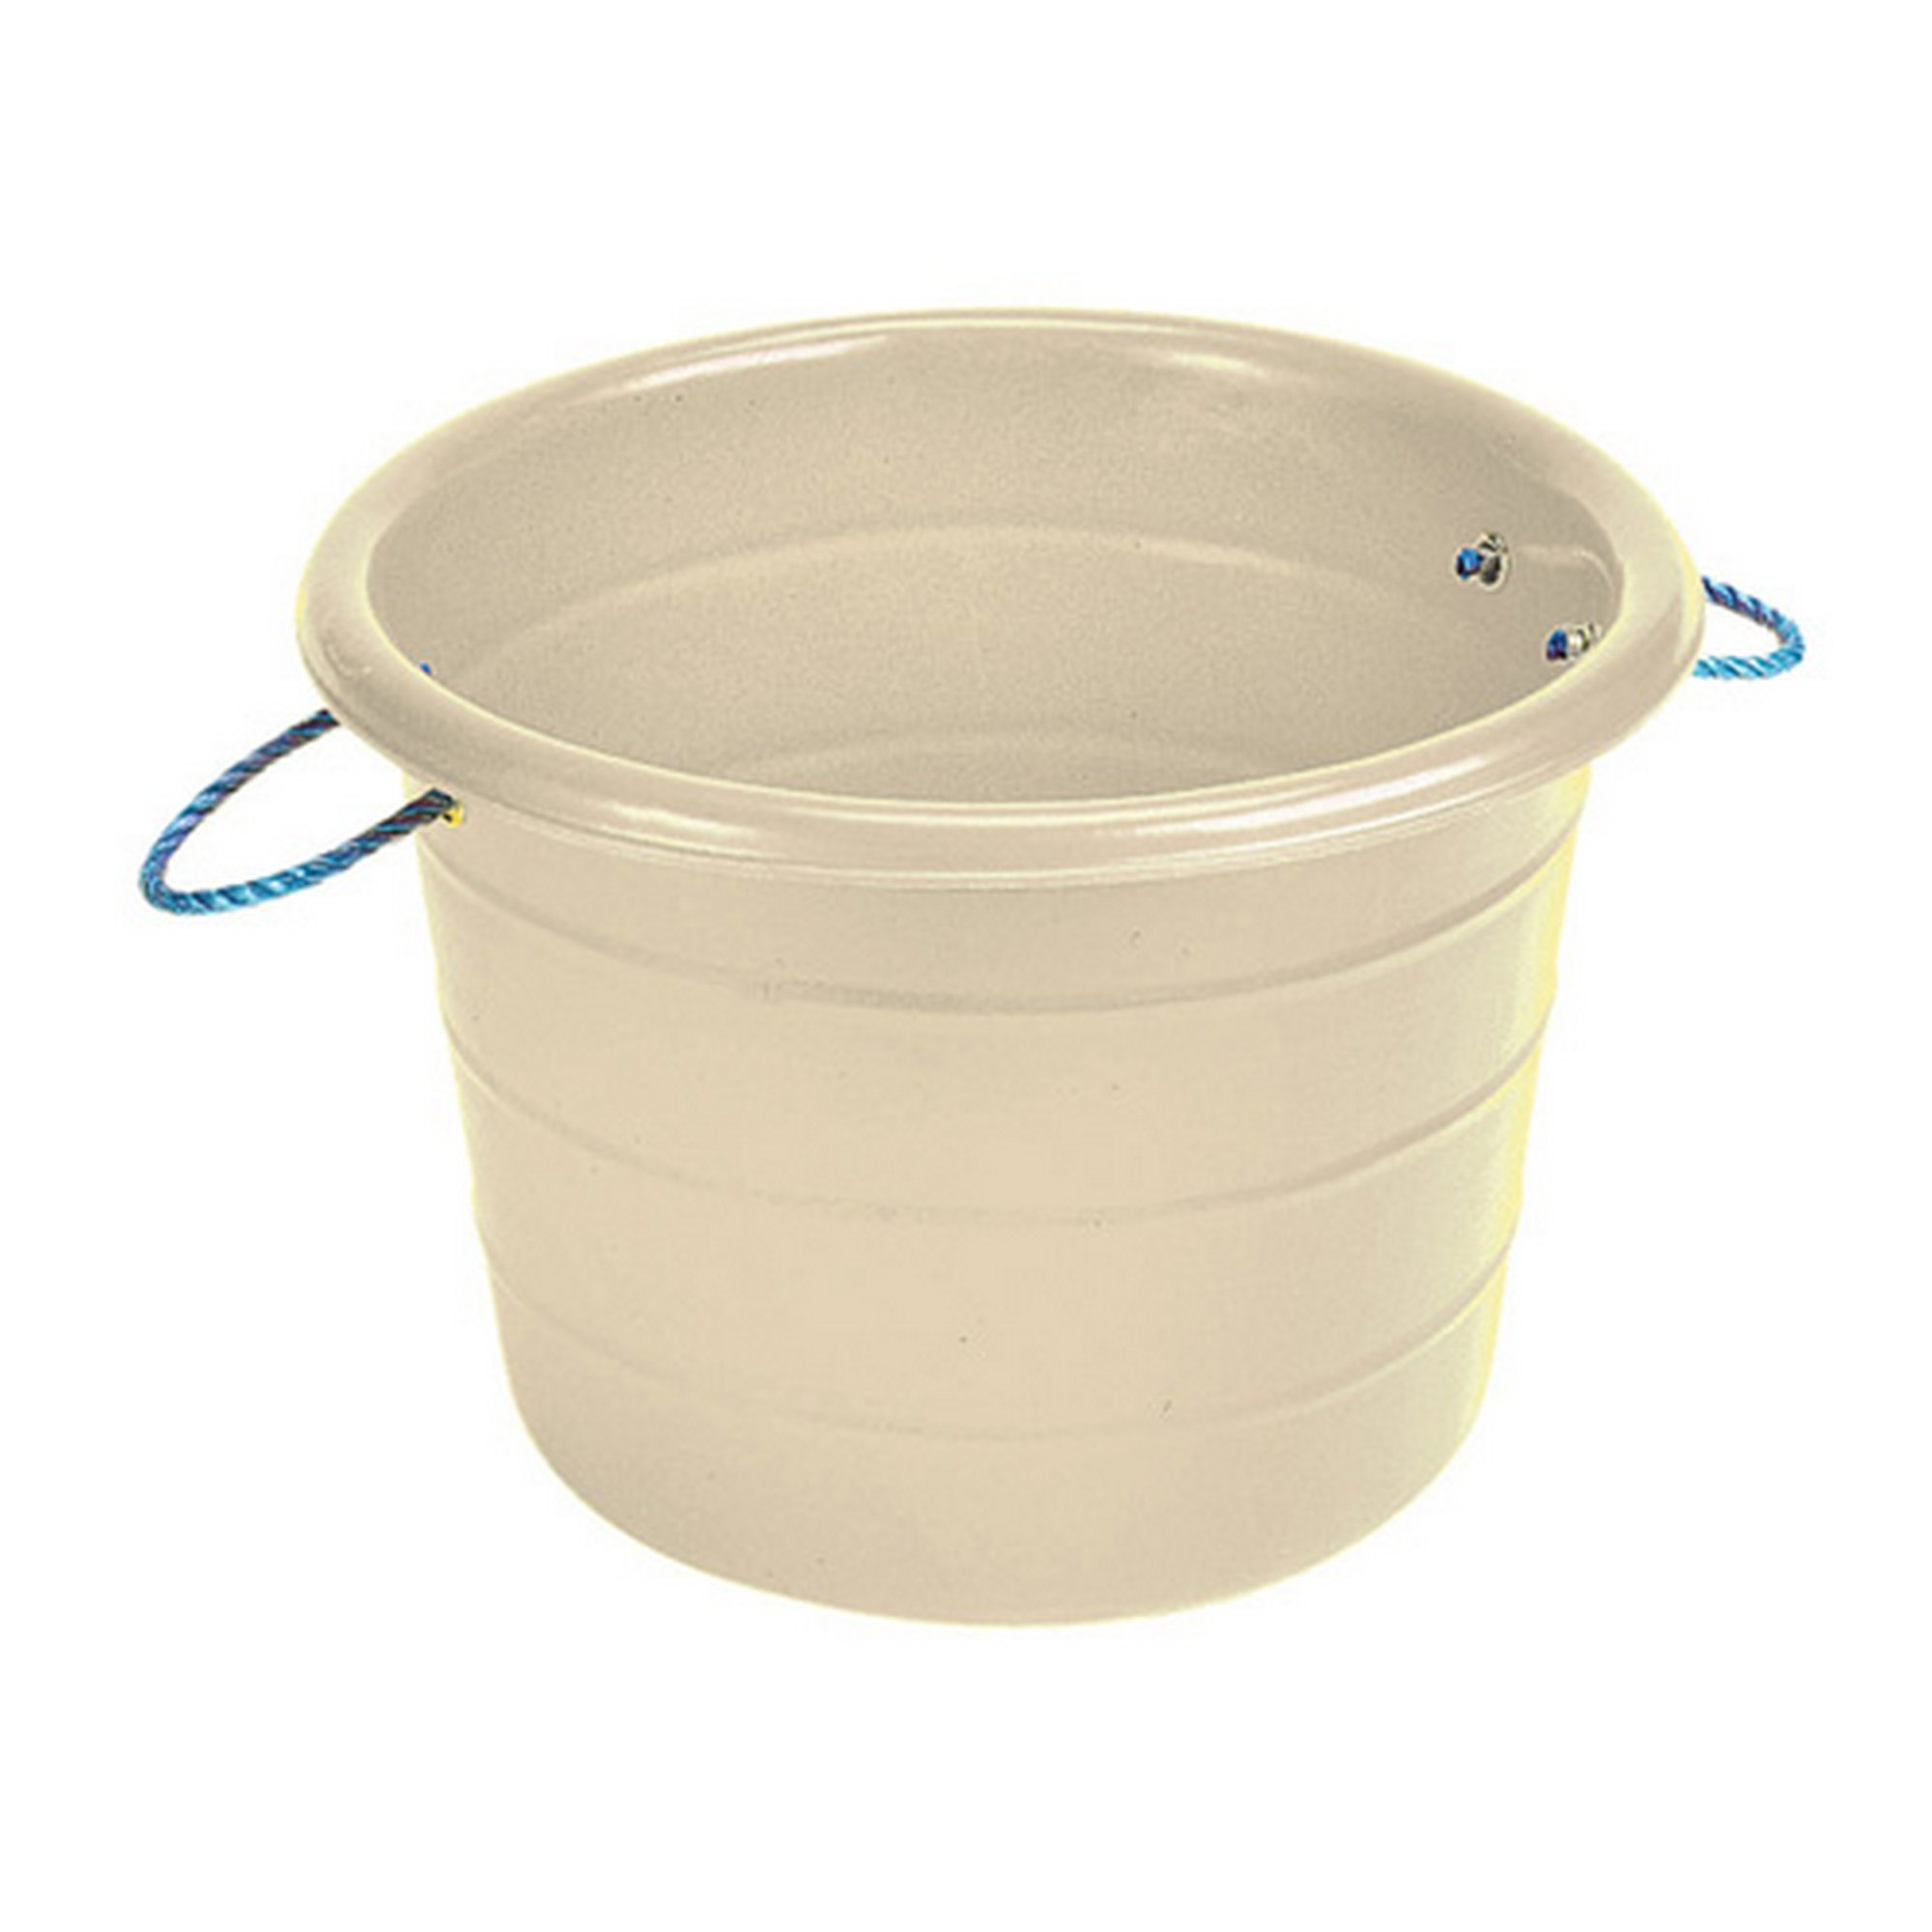 Stubbs Large Manure Bucket (One Size) (White) by Stubbs